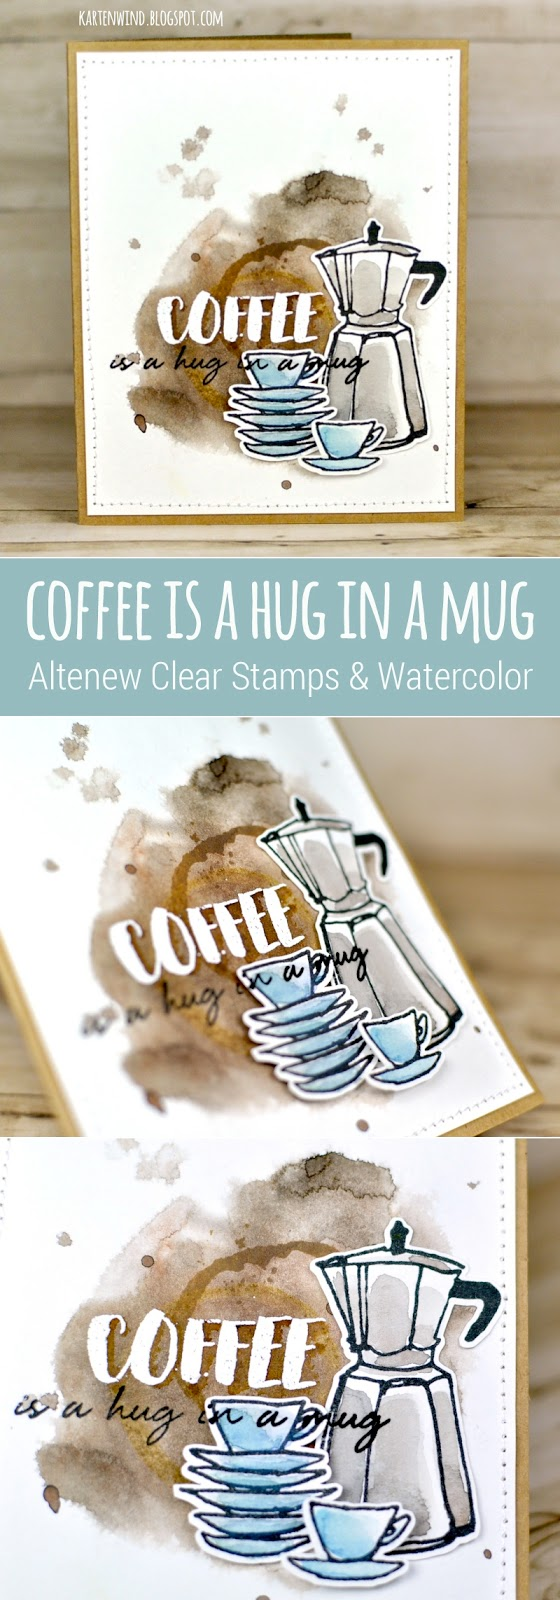 https://kartenwind.blogspot.com/2017/08/coffee-is-hug-in-mug-altenew.html